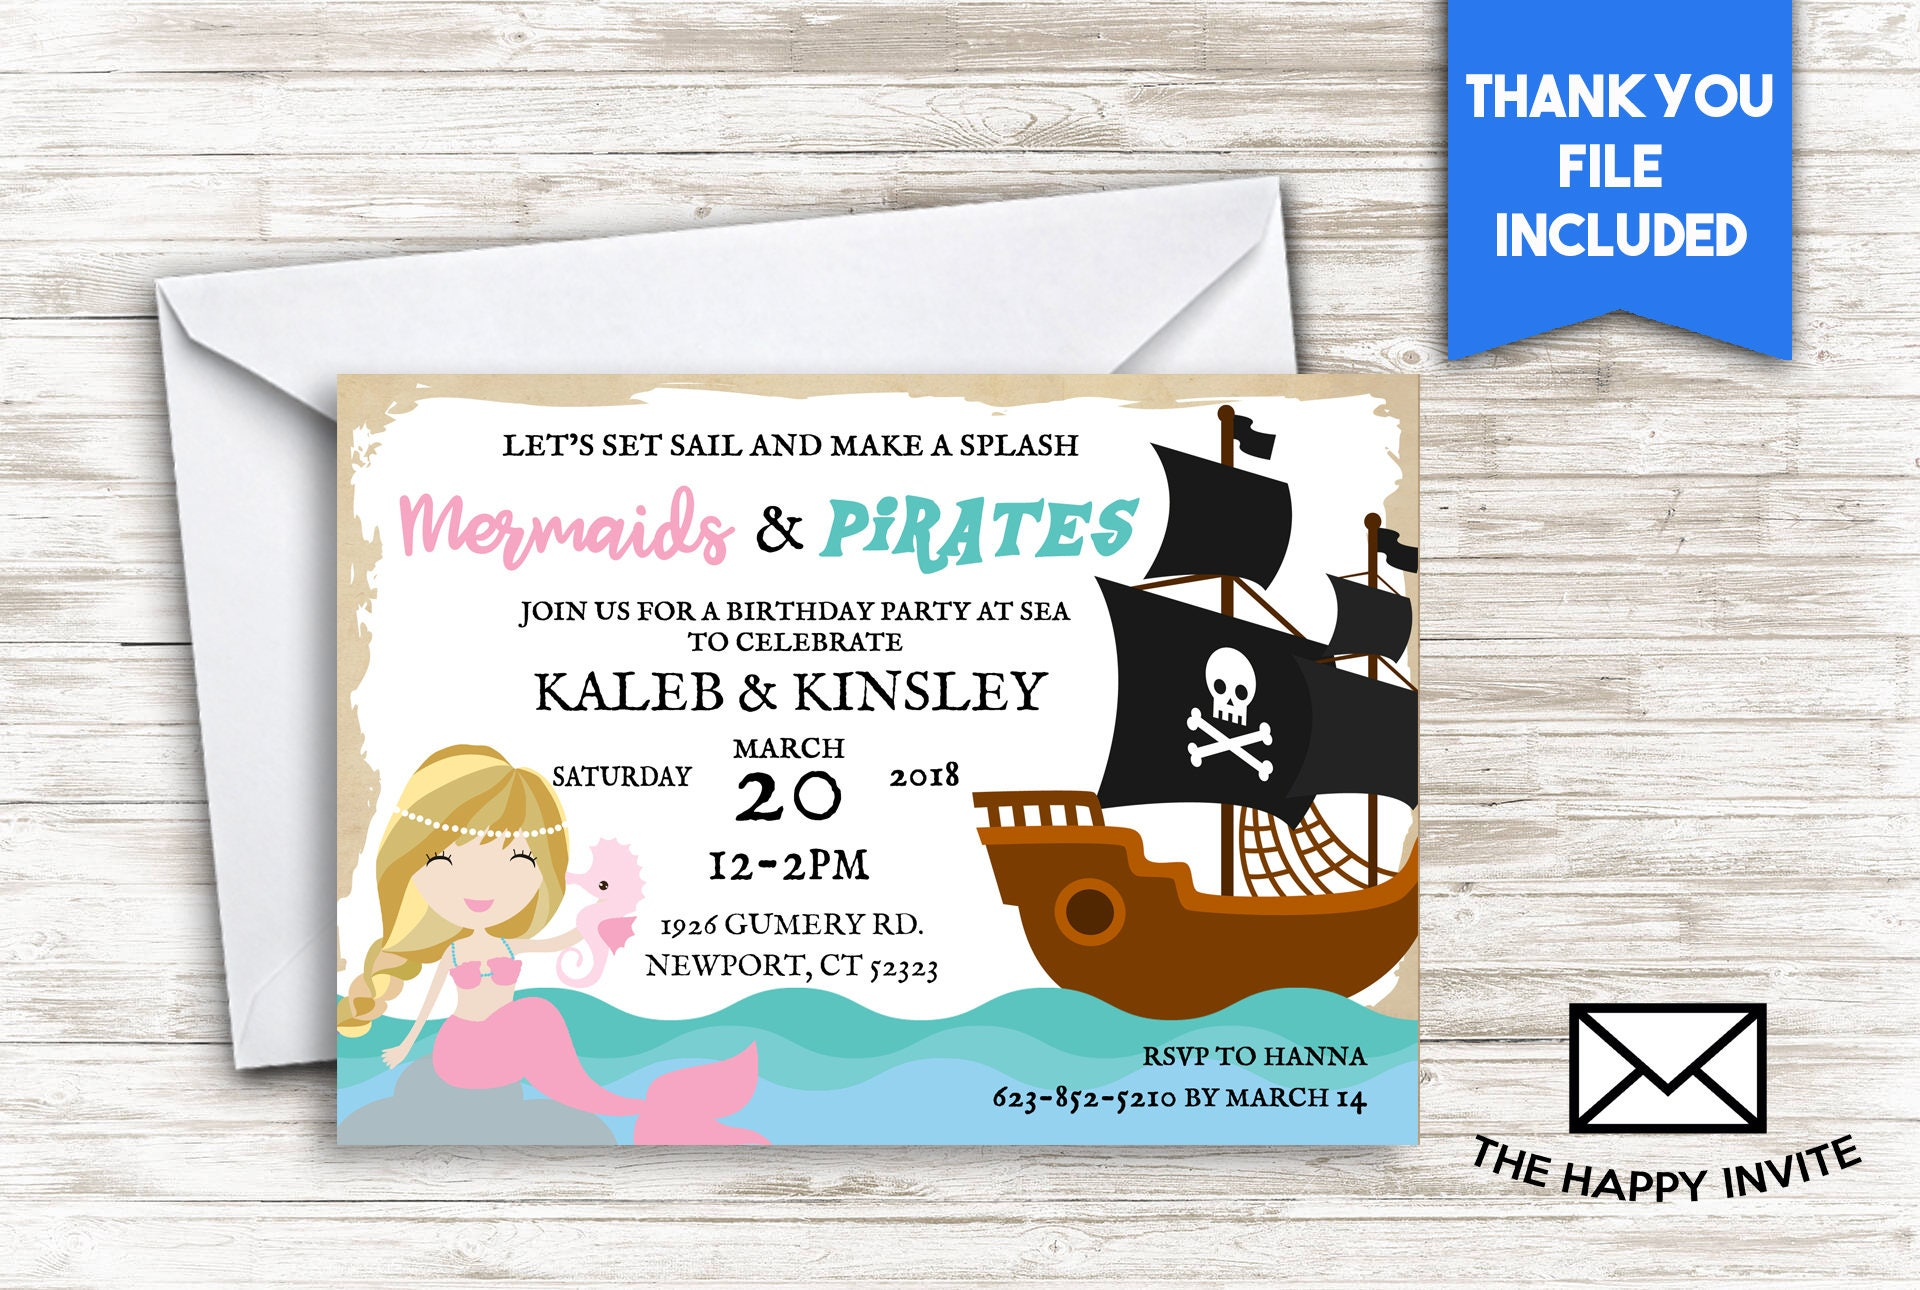 Mermaids And Pirates Double Birthday Invite 5x7 Digital | Etsy